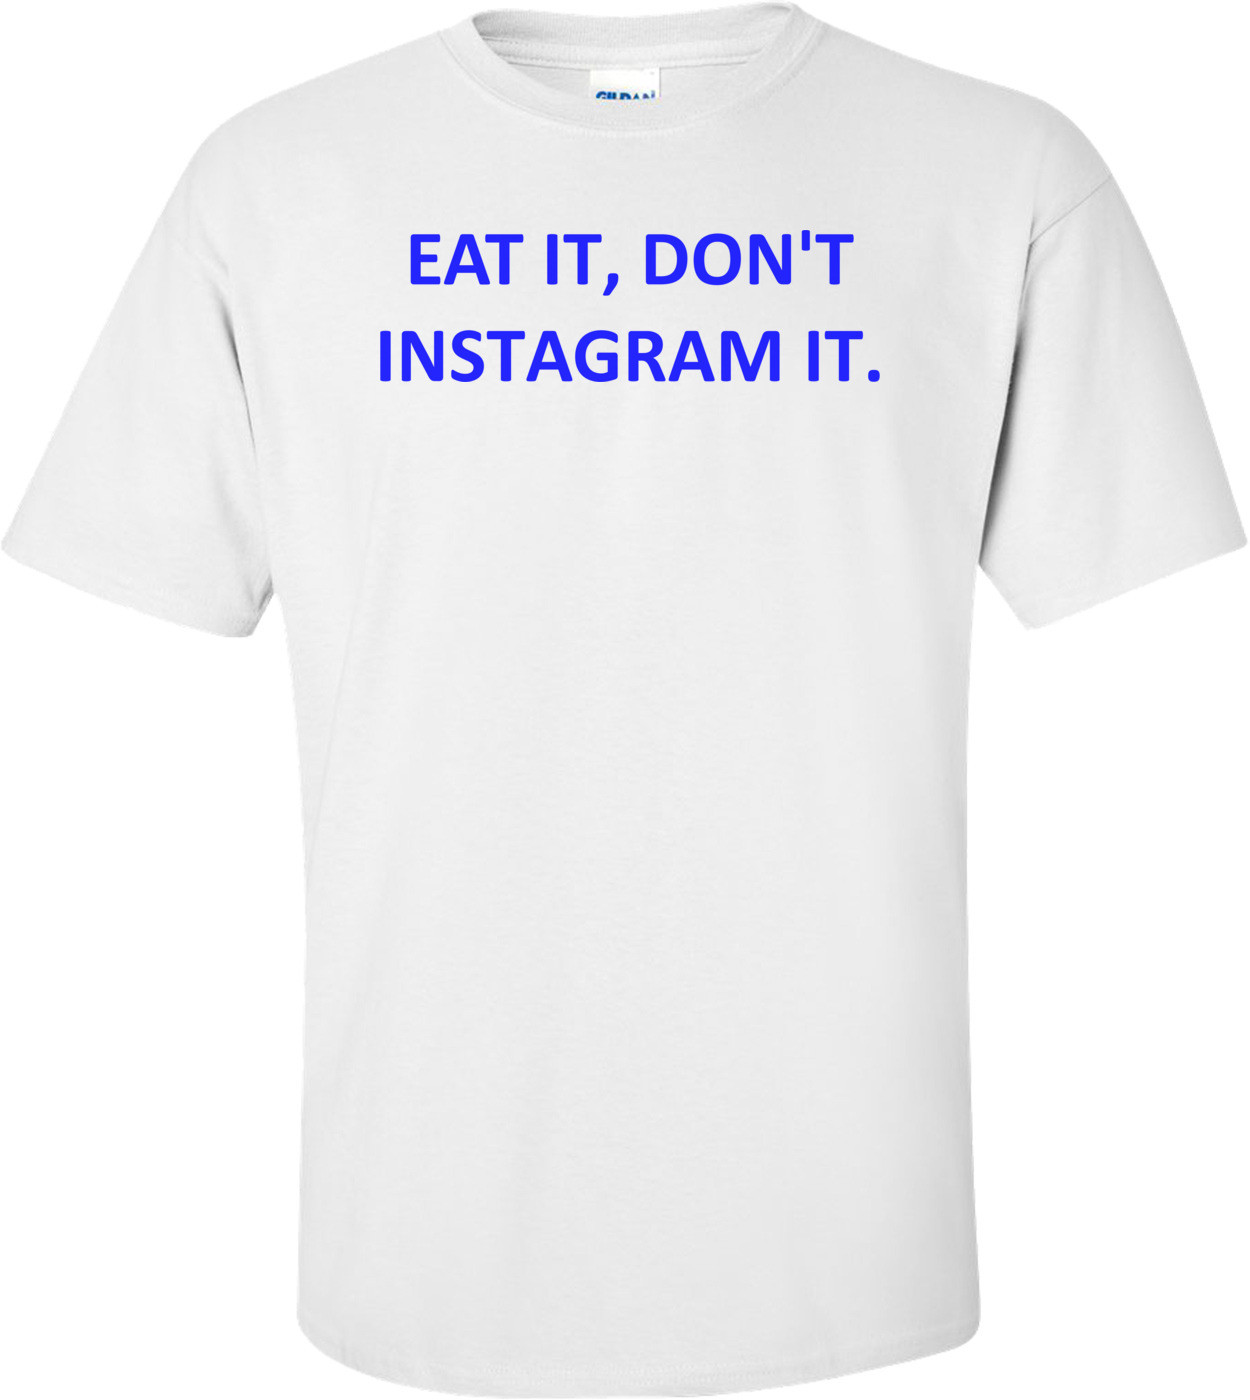 EAT IT, DON'T INSTAGRAM IT. Shirt